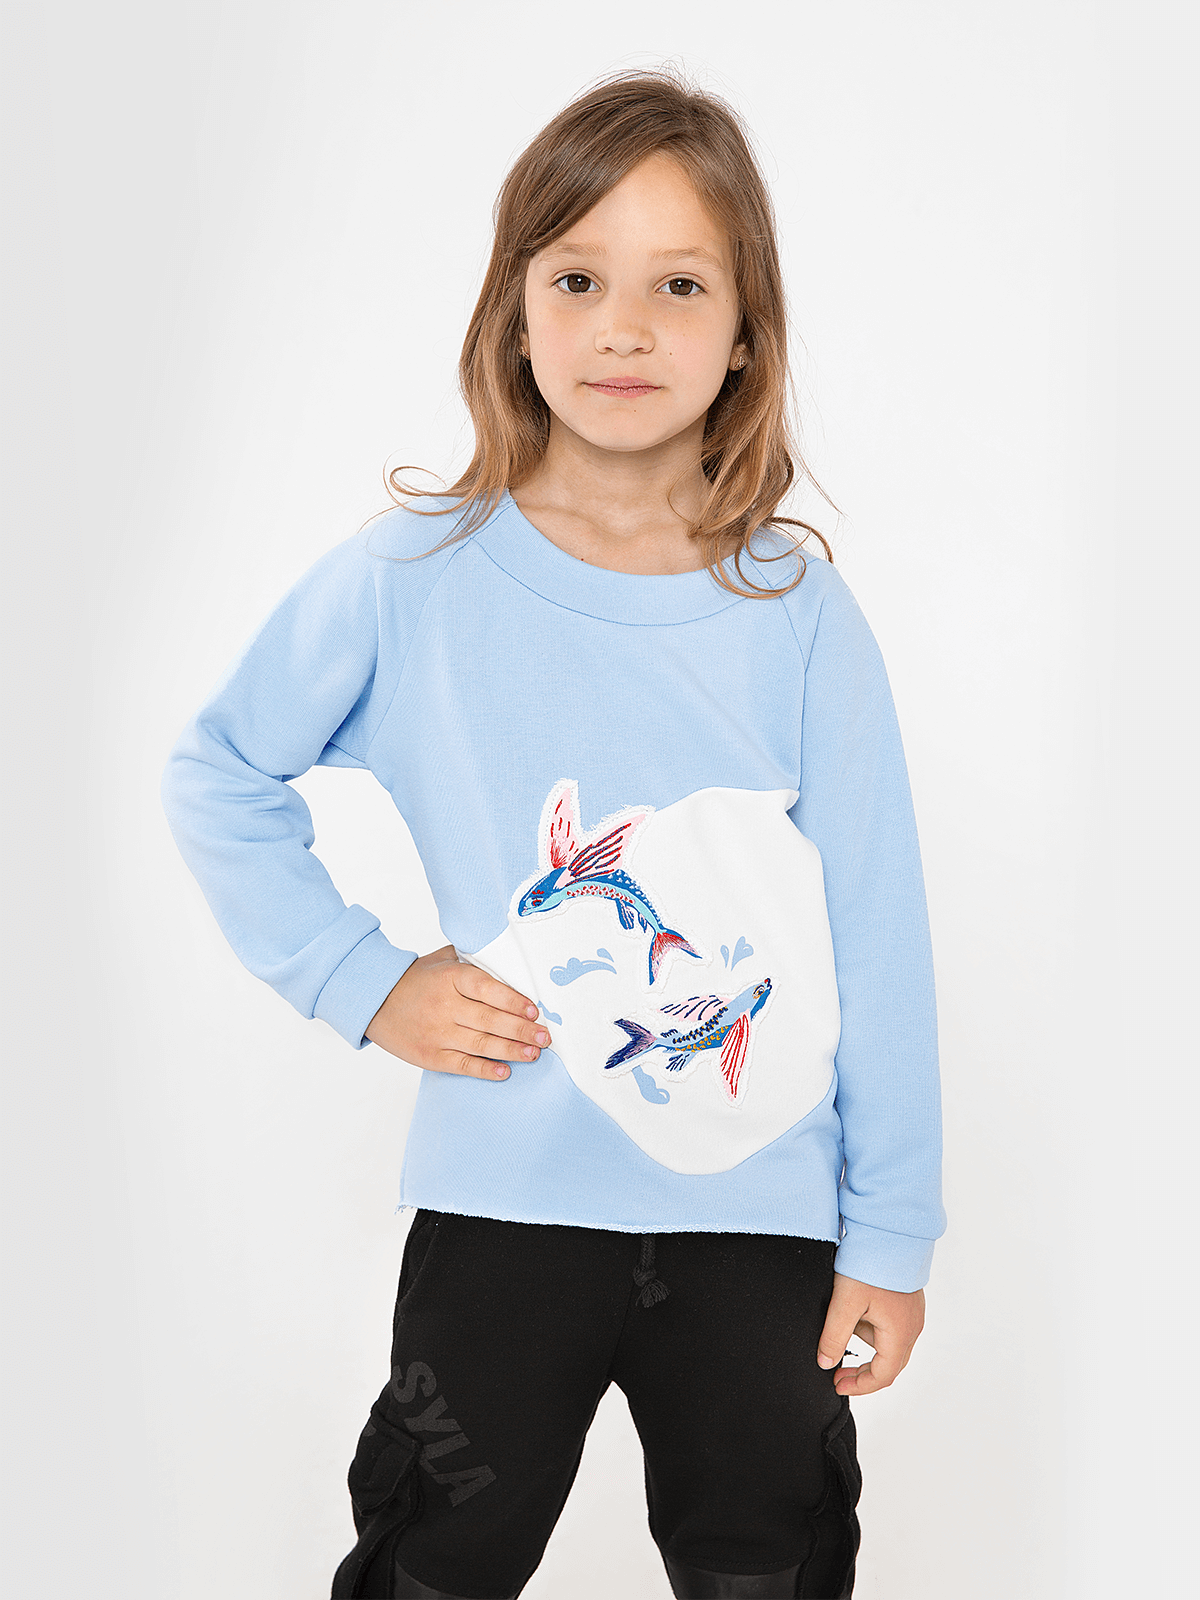 Kids Sweatshirt Flying Fishes. Color sky blue. Sweatshirt: unisex, well suited for both boys and girls.